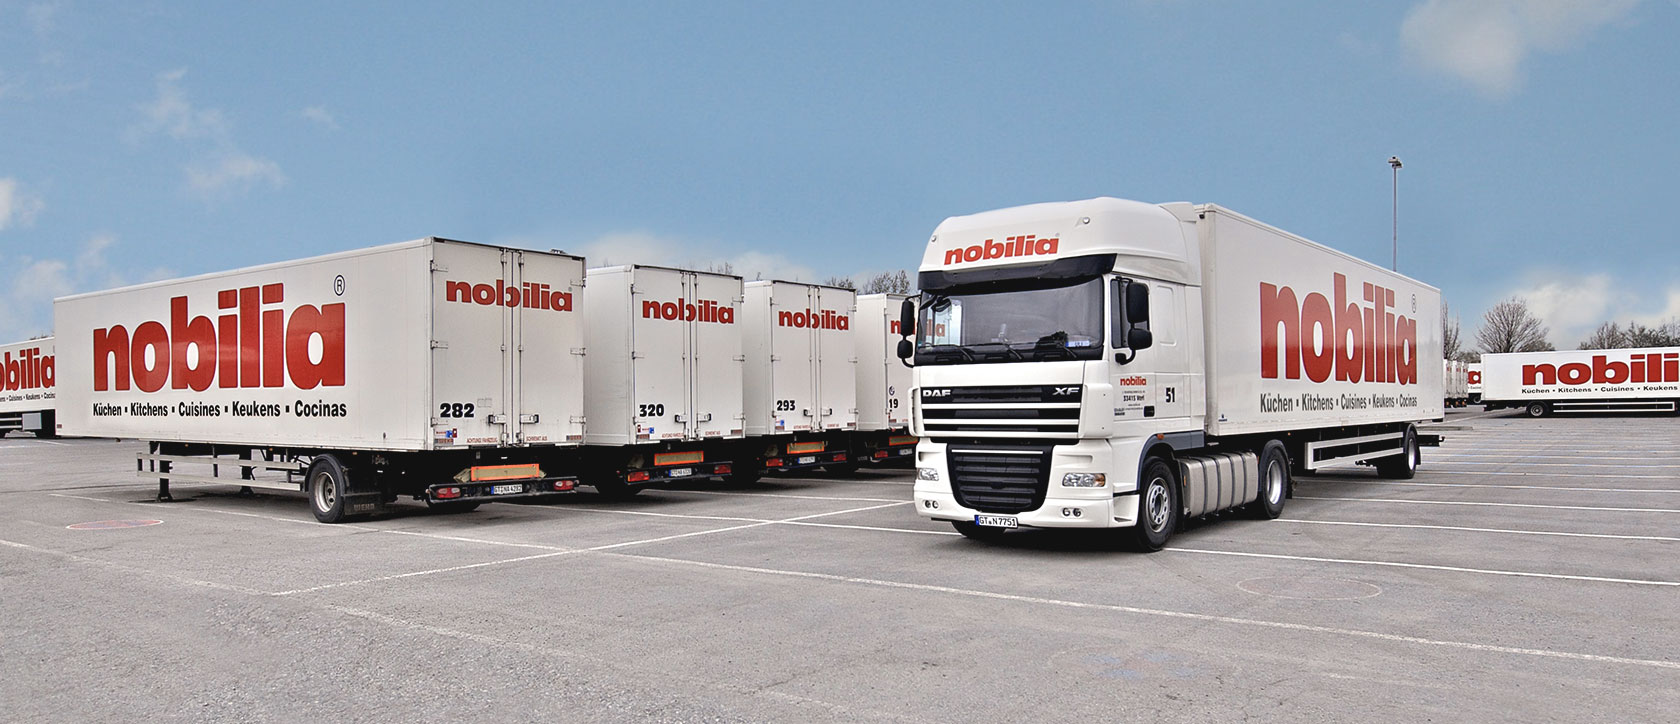 nobilia lorries and tractor-trailers in the nobilia parking area